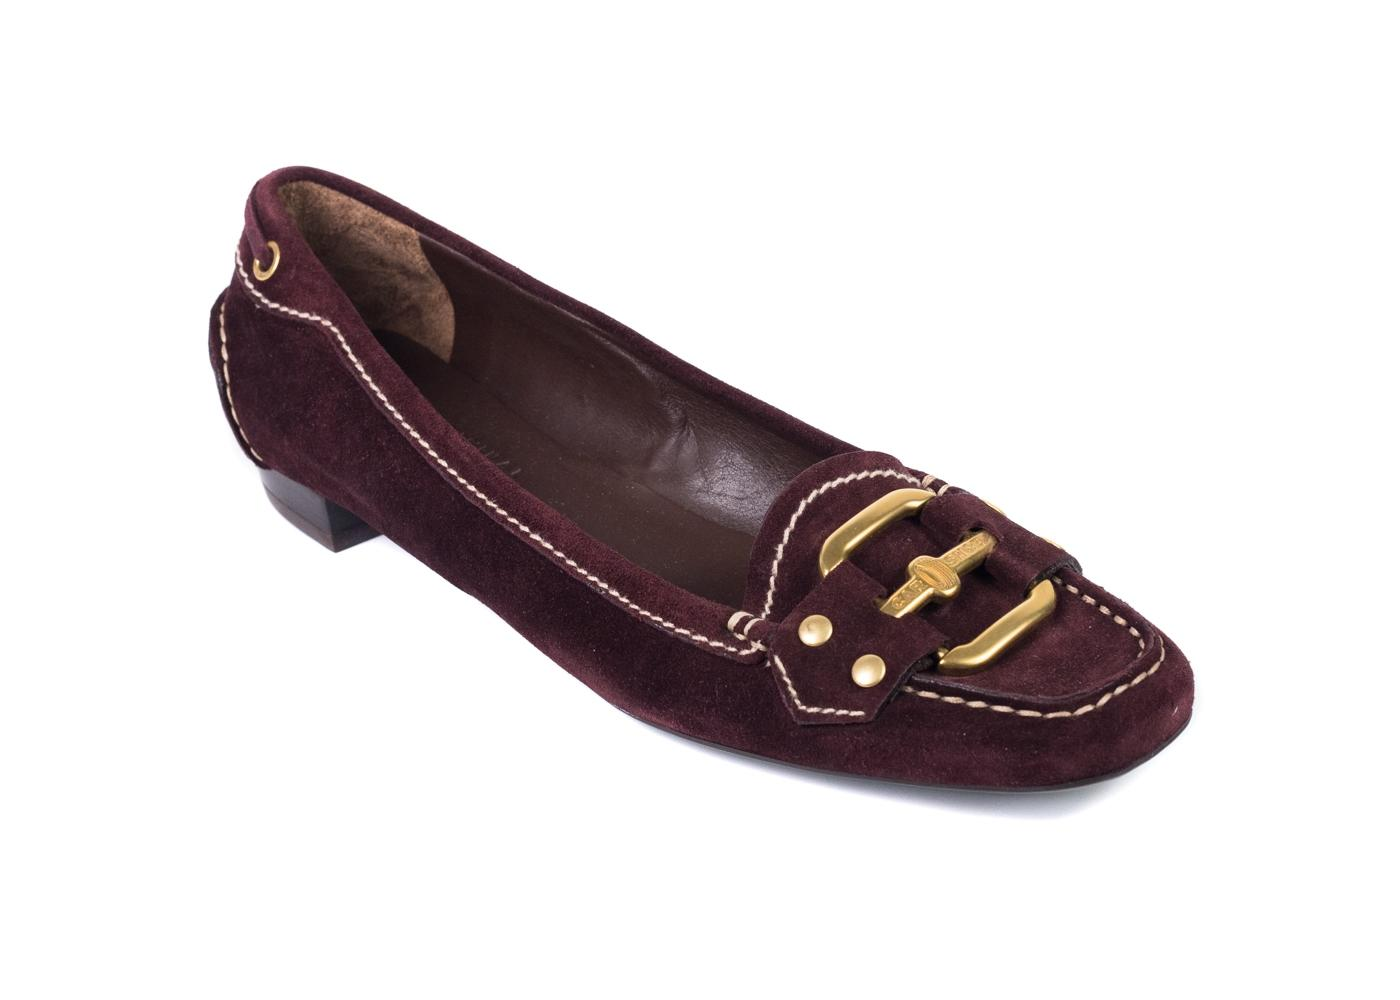 CAR SHOE Leather Flats vUisaygO